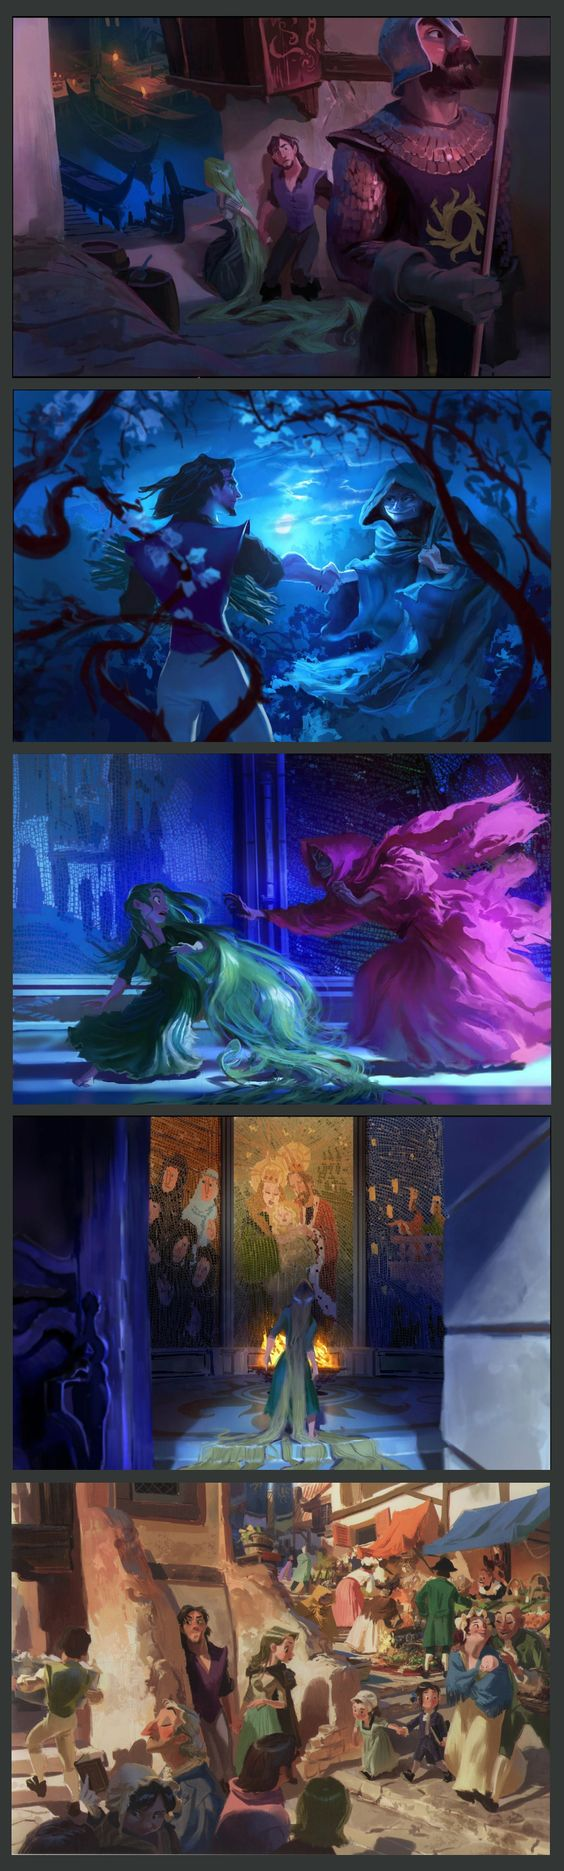 Paul Felix - Tangled Concept Art. These are even more beautiful than the movie